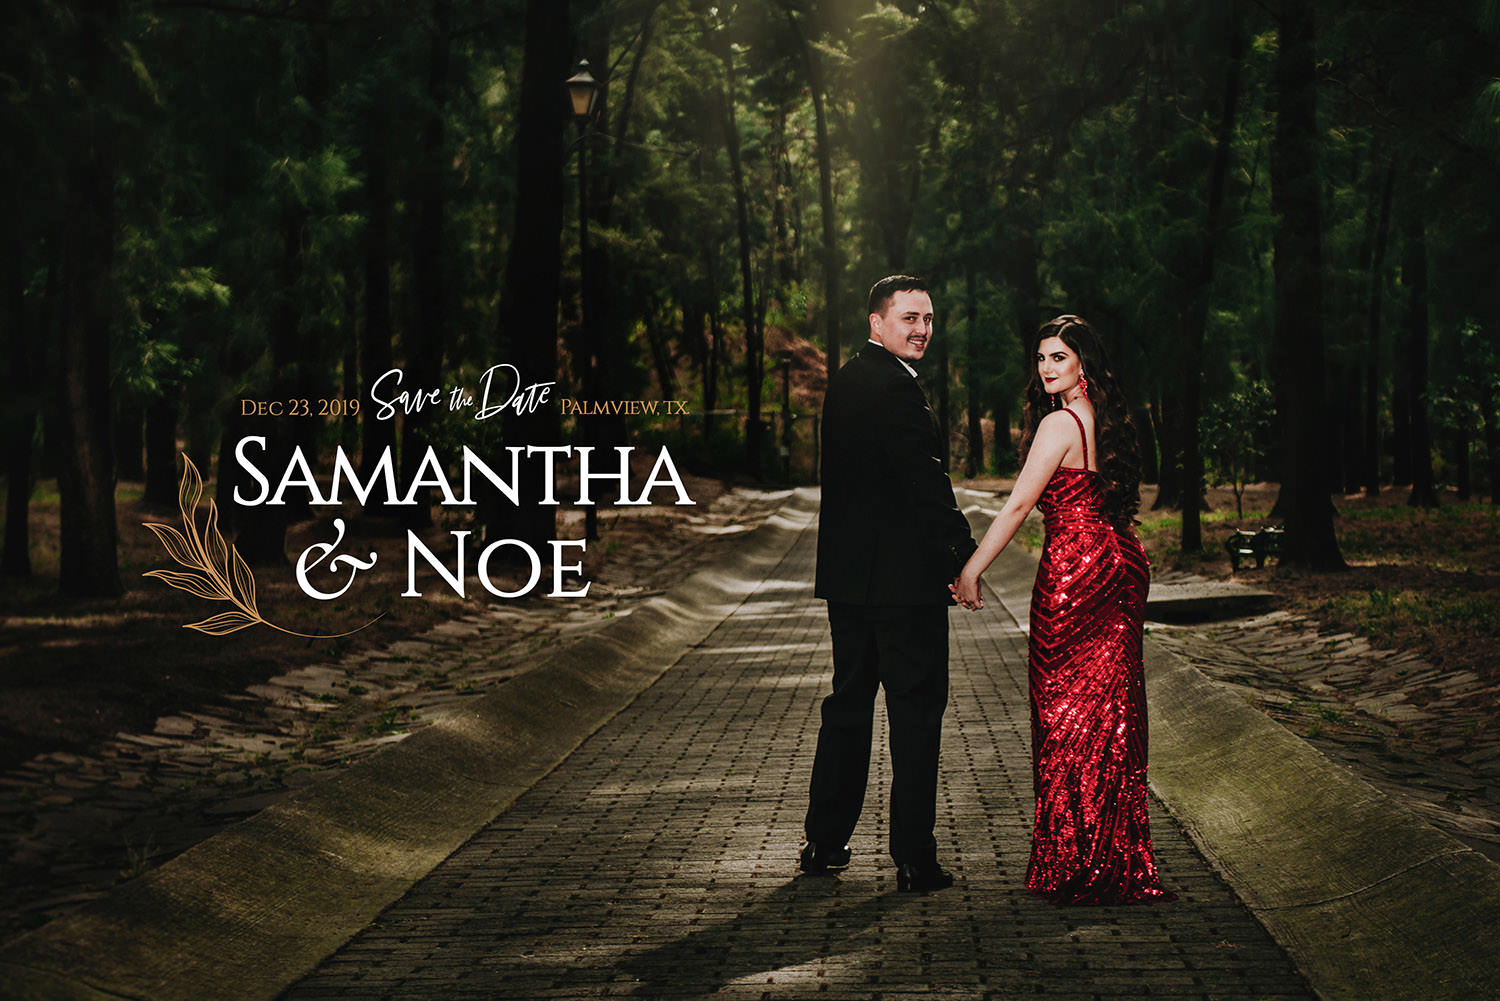 Samantha y Noe - Preboda-12 Save the date